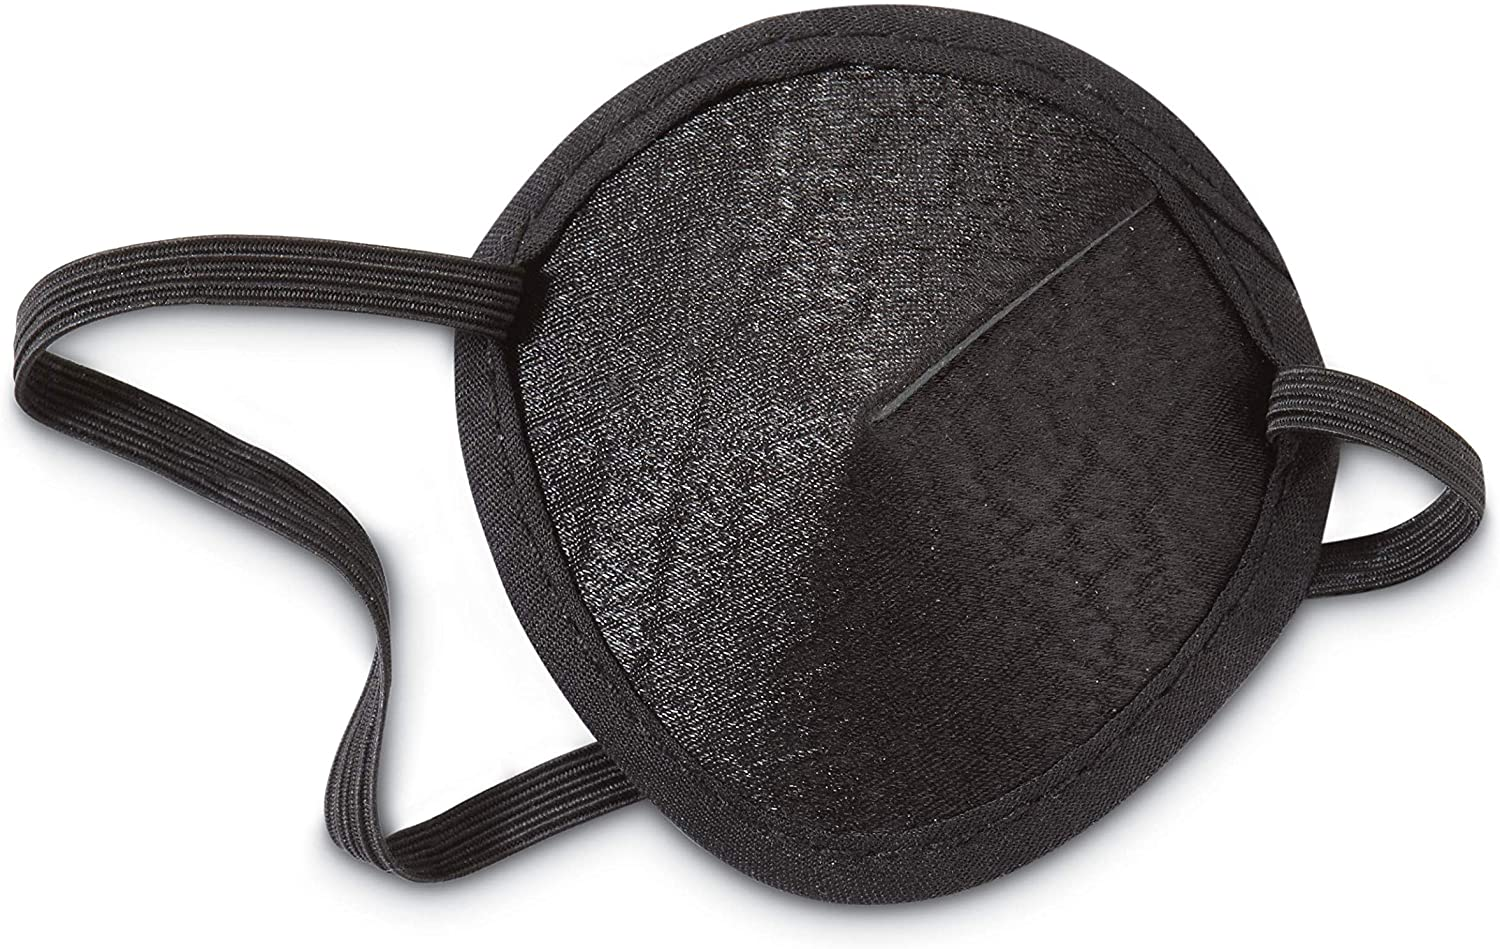 1x Good Quality Single Eye Patch Soft One Eye Patch Single Eye Mask For Children or Adults Great Pirate Costume Women or Men